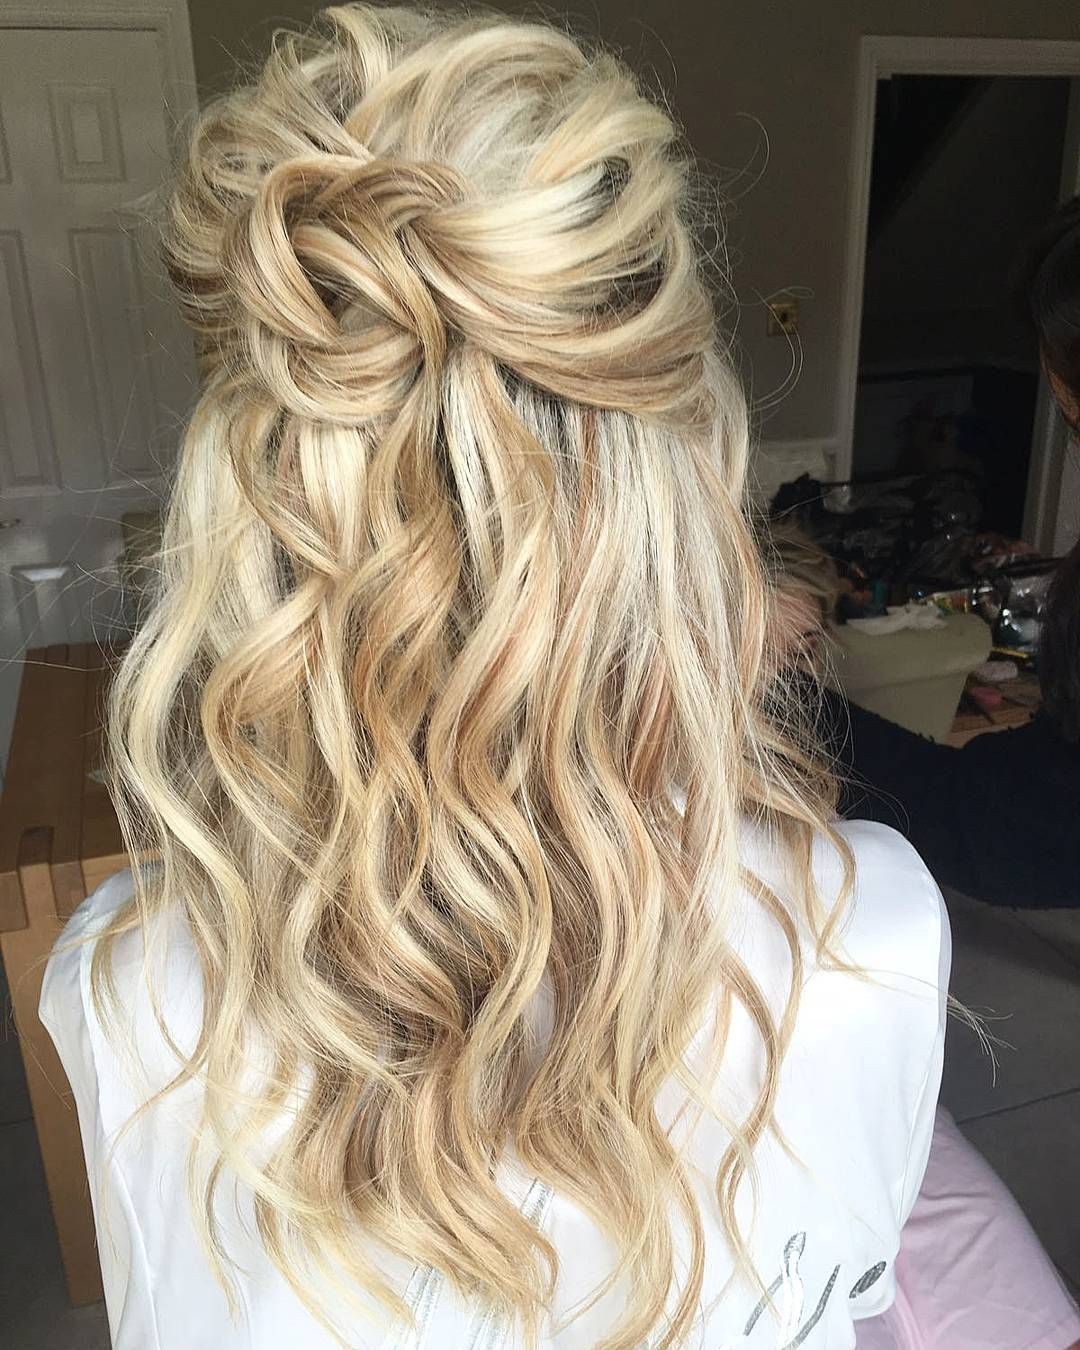 206 Likes 12 Comments The Space Hair Soul Beauty Thespacehairsoulbeauty On Instagram An U Bridesmaid Hair Half Up Wedding Hair Down Wedding Hair Half